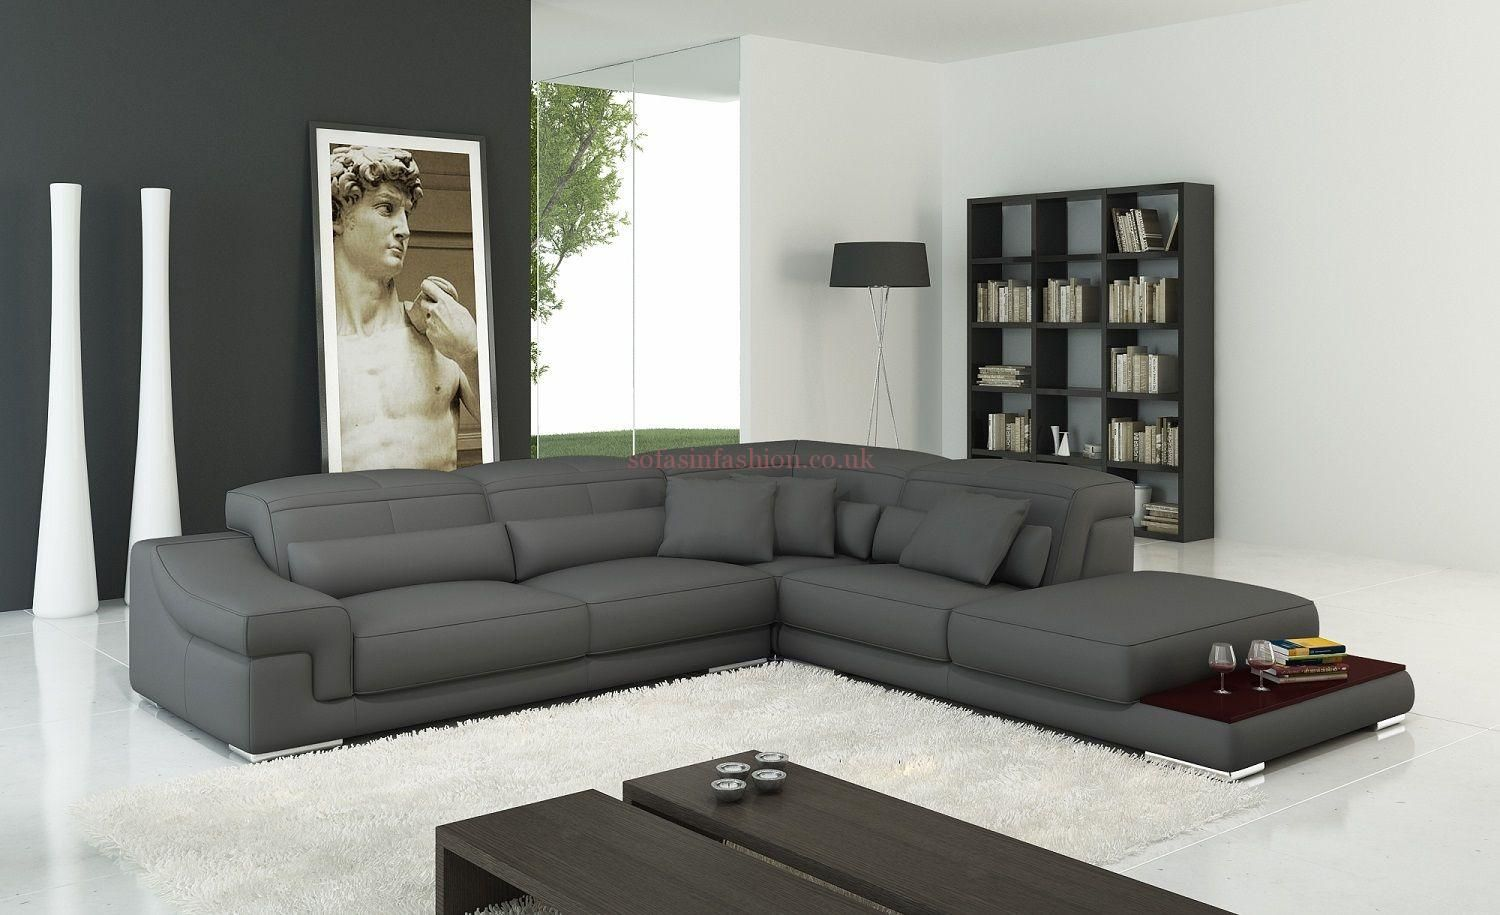 Cool Sofas Uk Good Sofas Uk 55 With Additional Sofa Table Ideas With Sofas Uk Http Sofasc Leather Corner Sofa Grey Leather Corner Sofa Corner Sofa Design